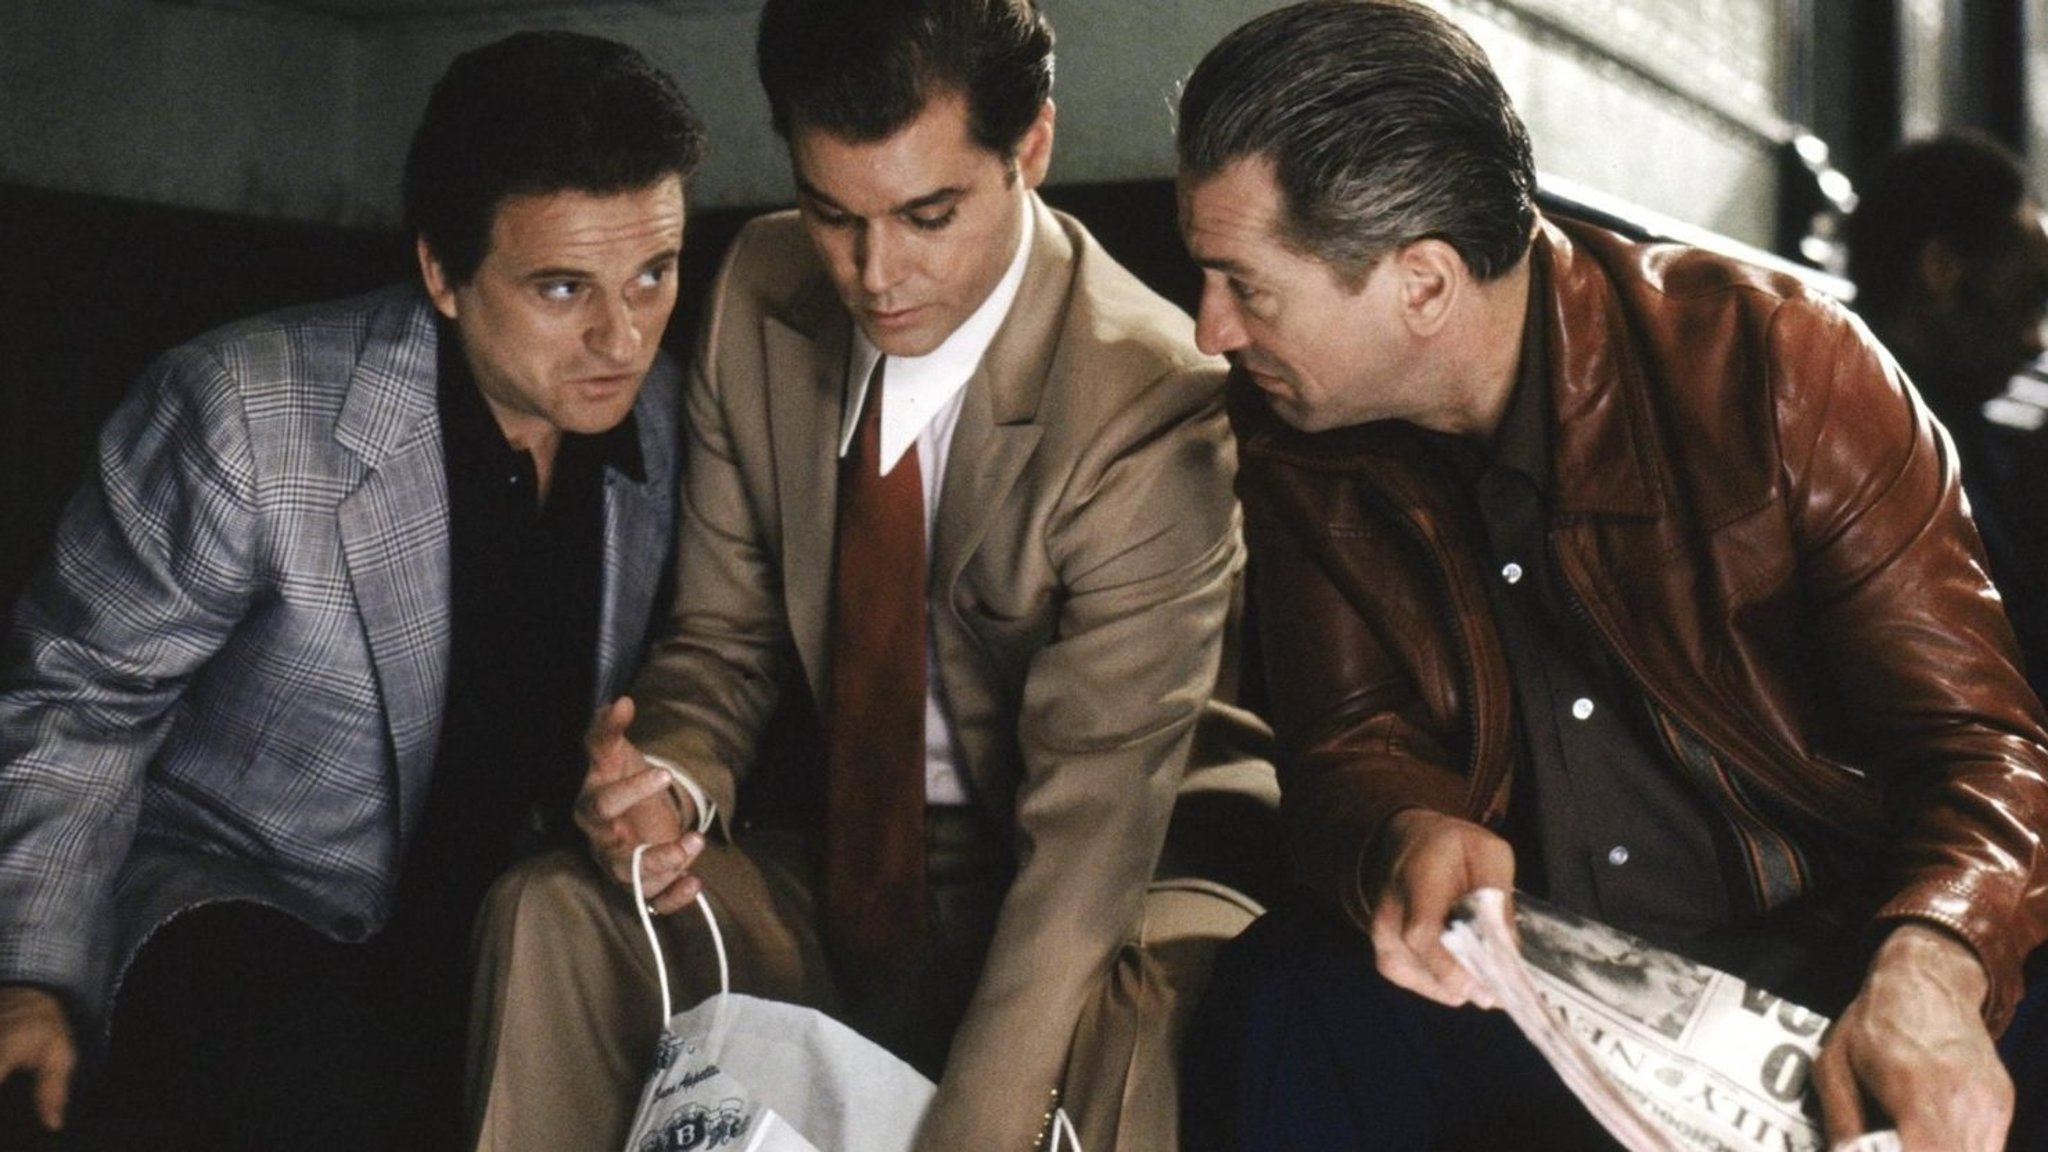 Goodfellas (1990) by Martin Scorsese